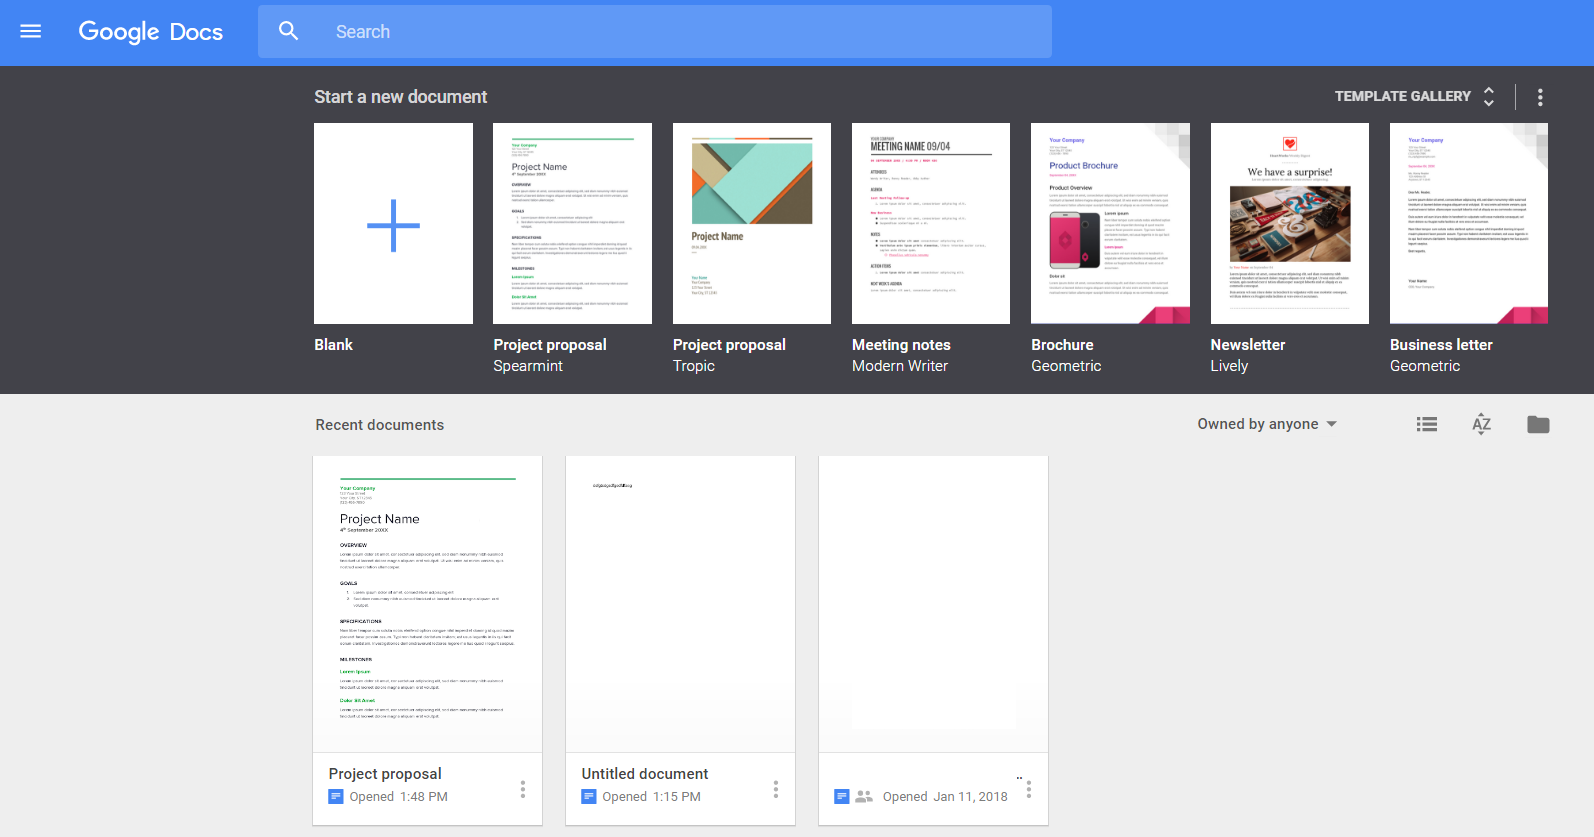 Get your Google Docs on a wall-mounted screen - Yodeck User